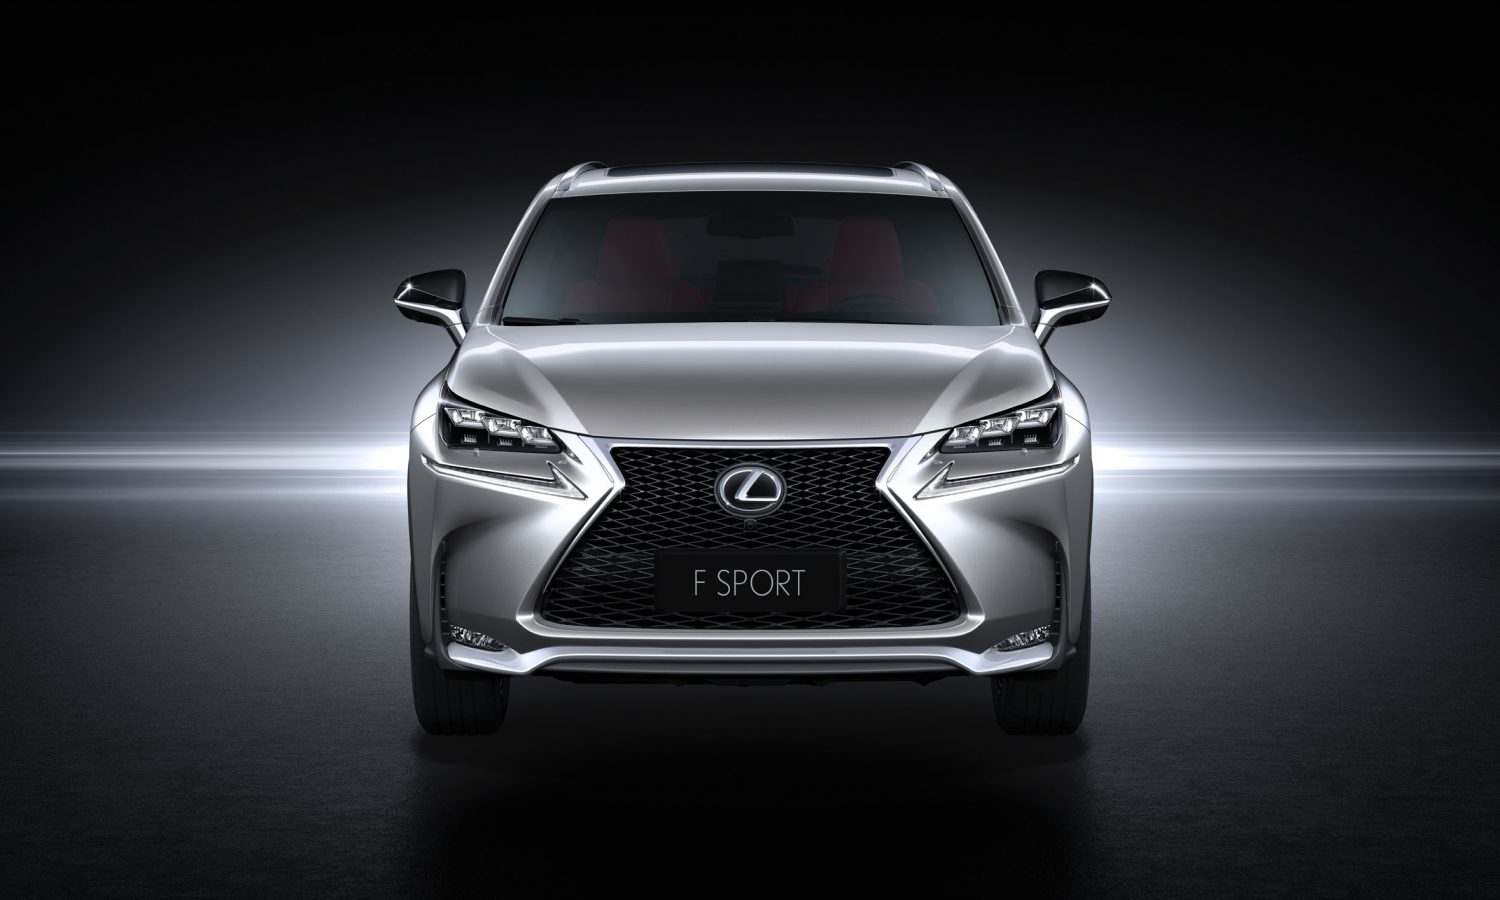 Lexus Announces Twins! – All-New NX Compact Crossover Introduces First Twin Scroll Turbo Charger to Lineup